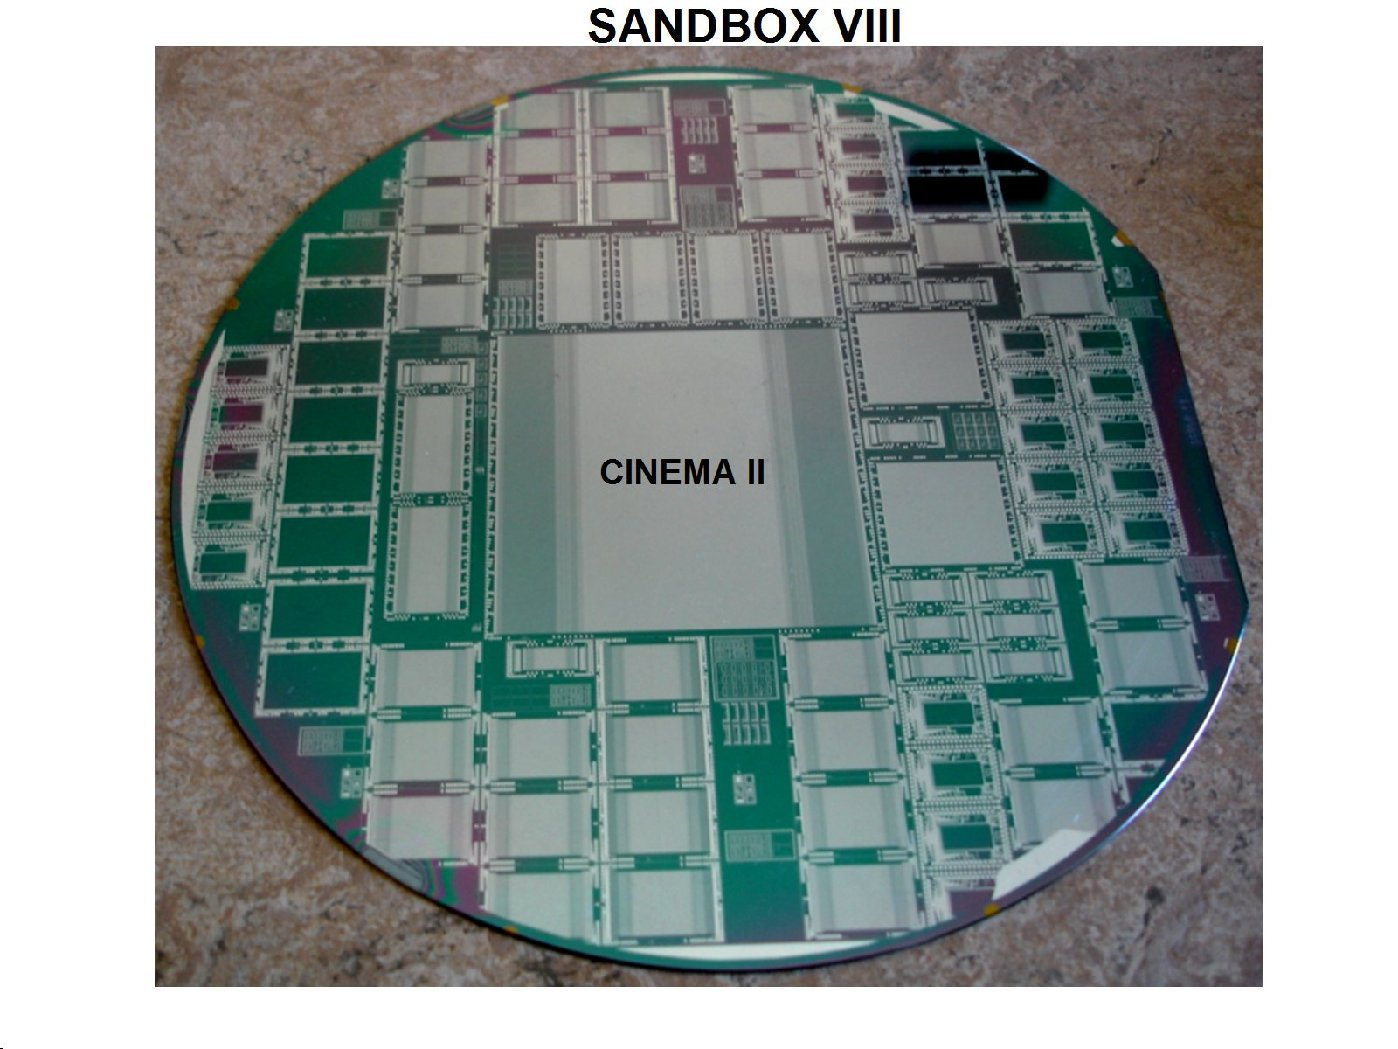 Janesick Pixel Vision Inc. Cinema II Sandbox VIII commercoial CCD wafer